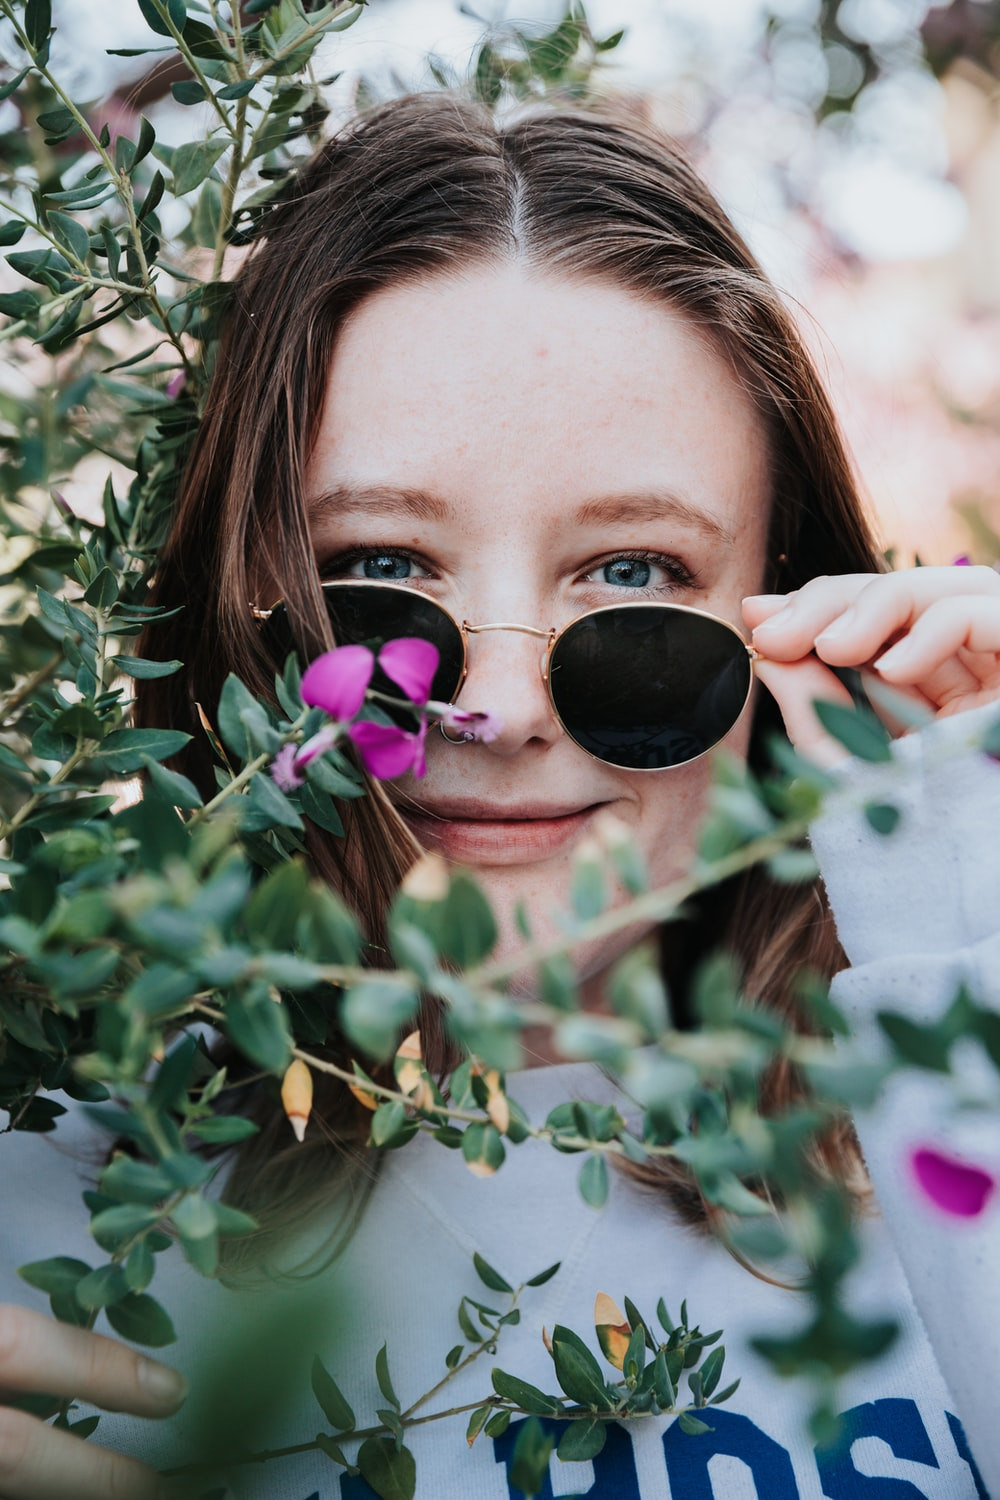 woman in black sunglasses holding green plant